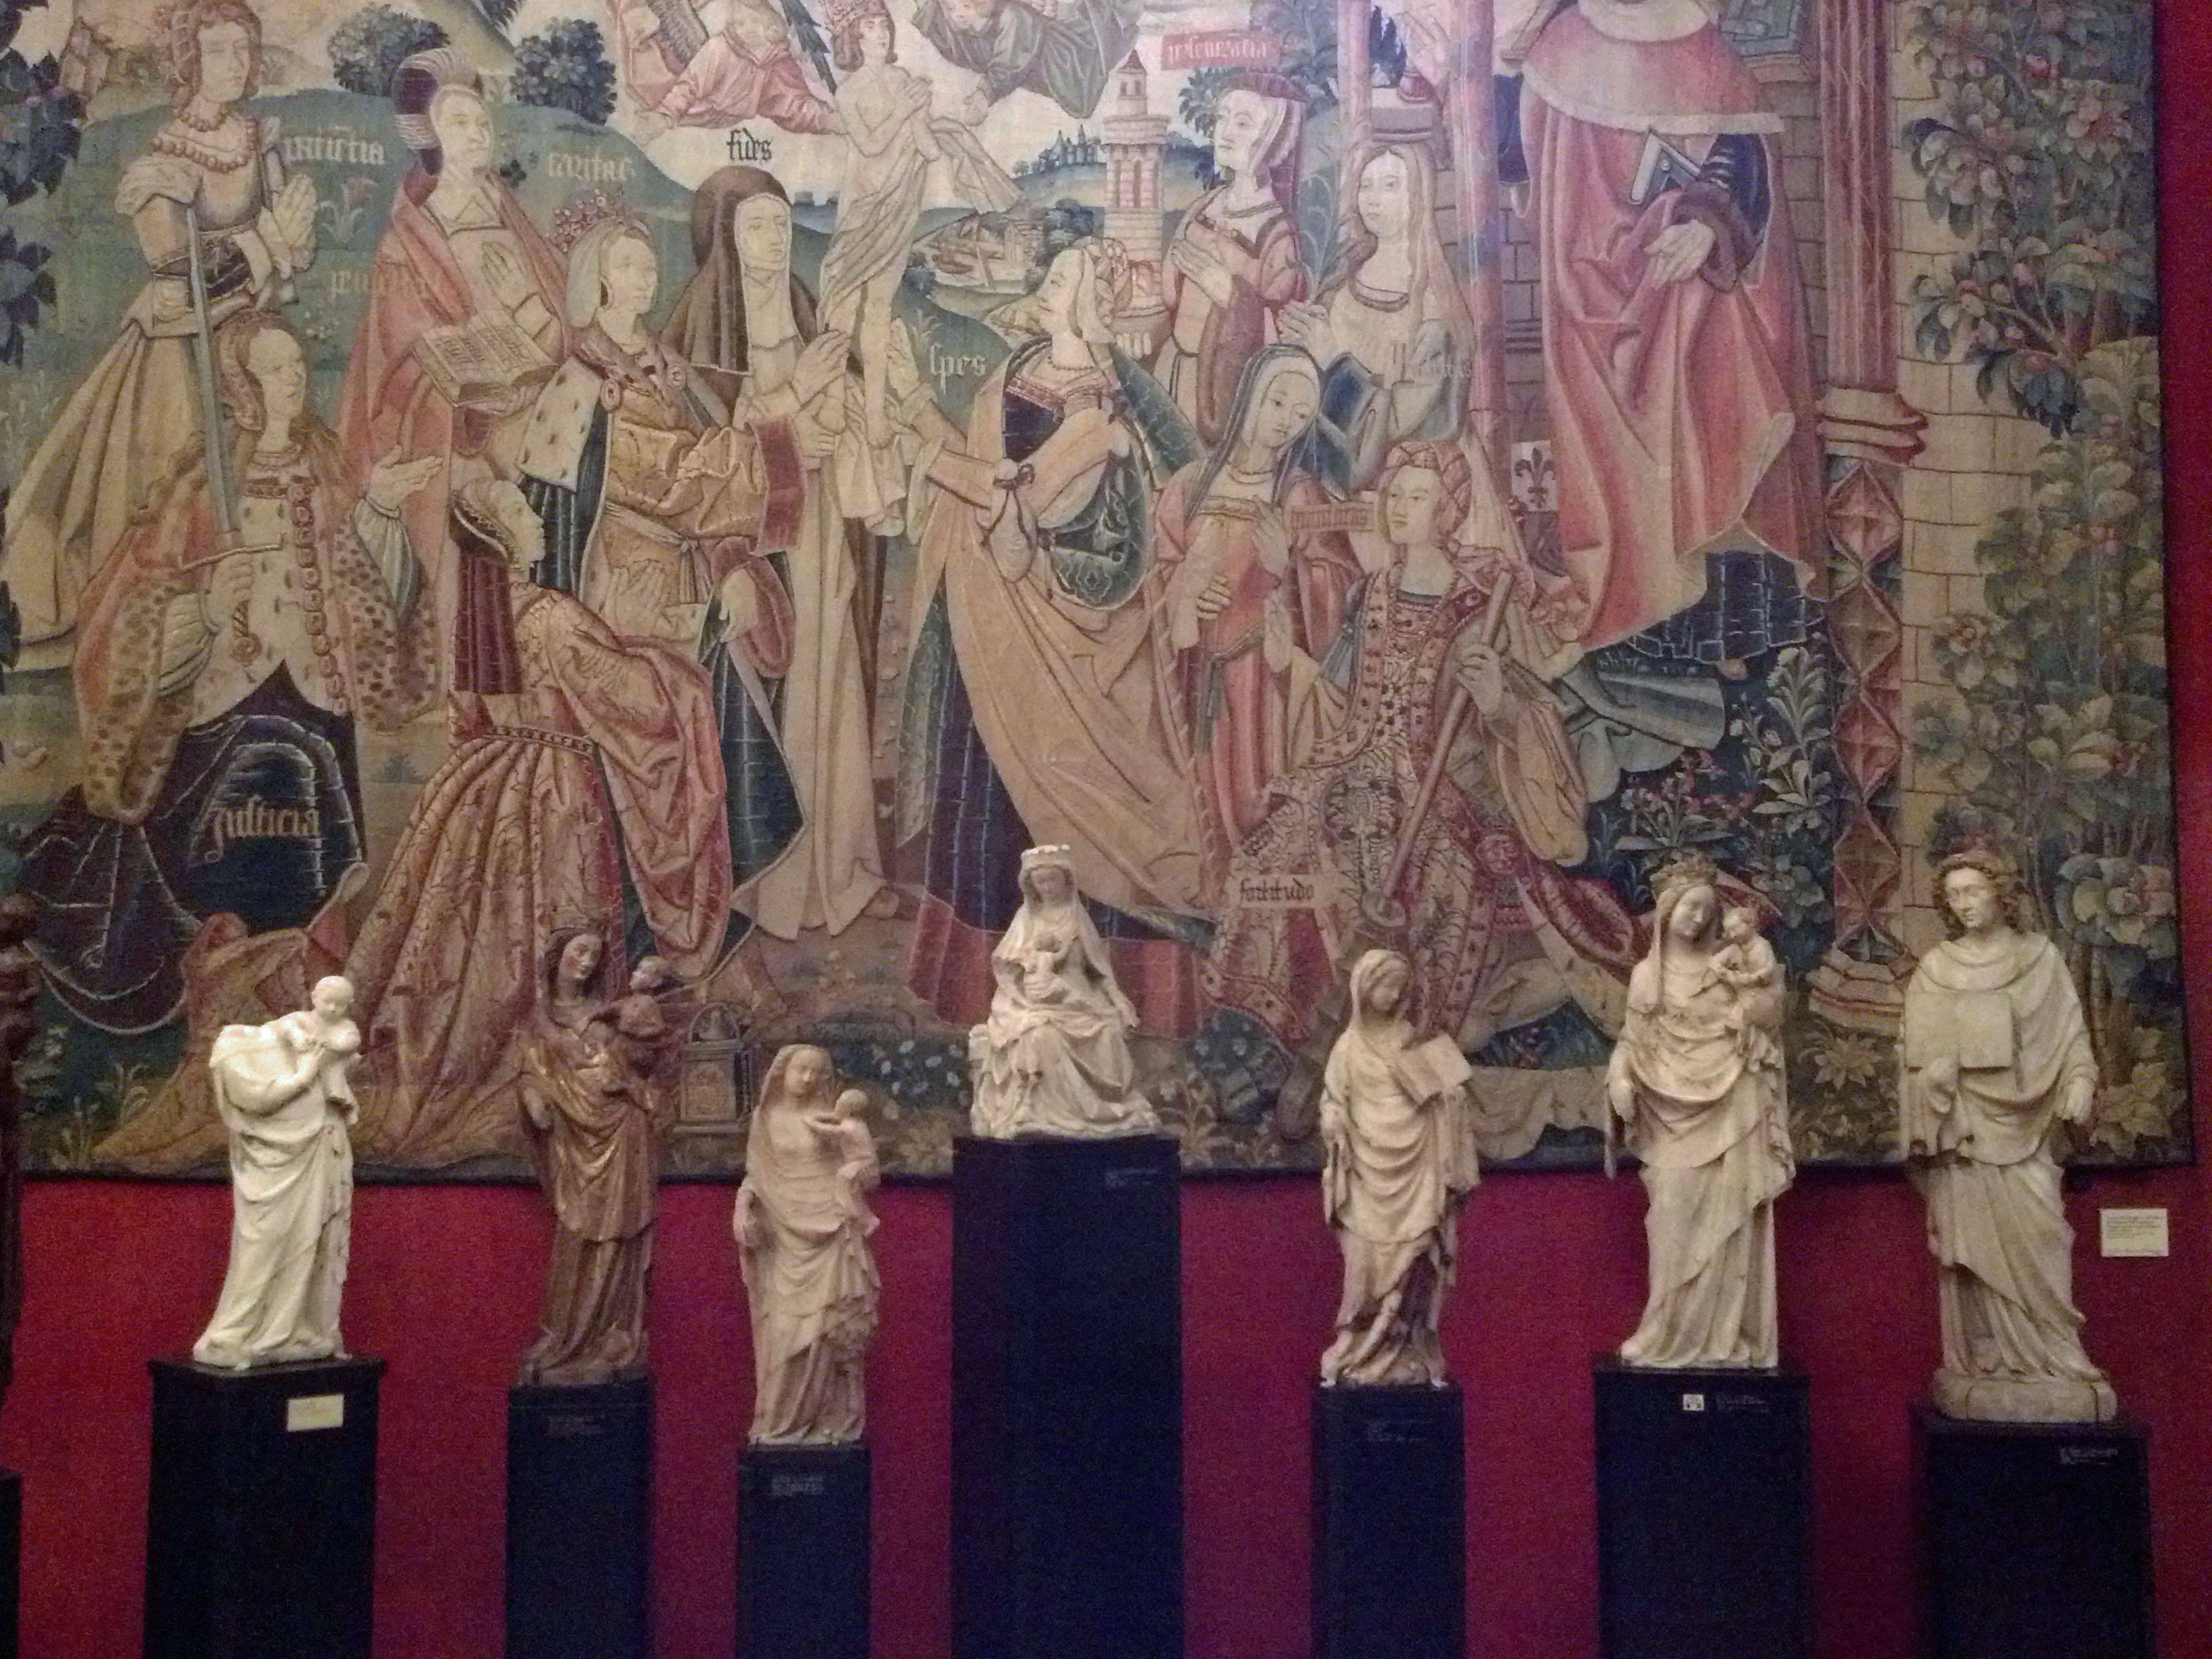 tapestry at cluny